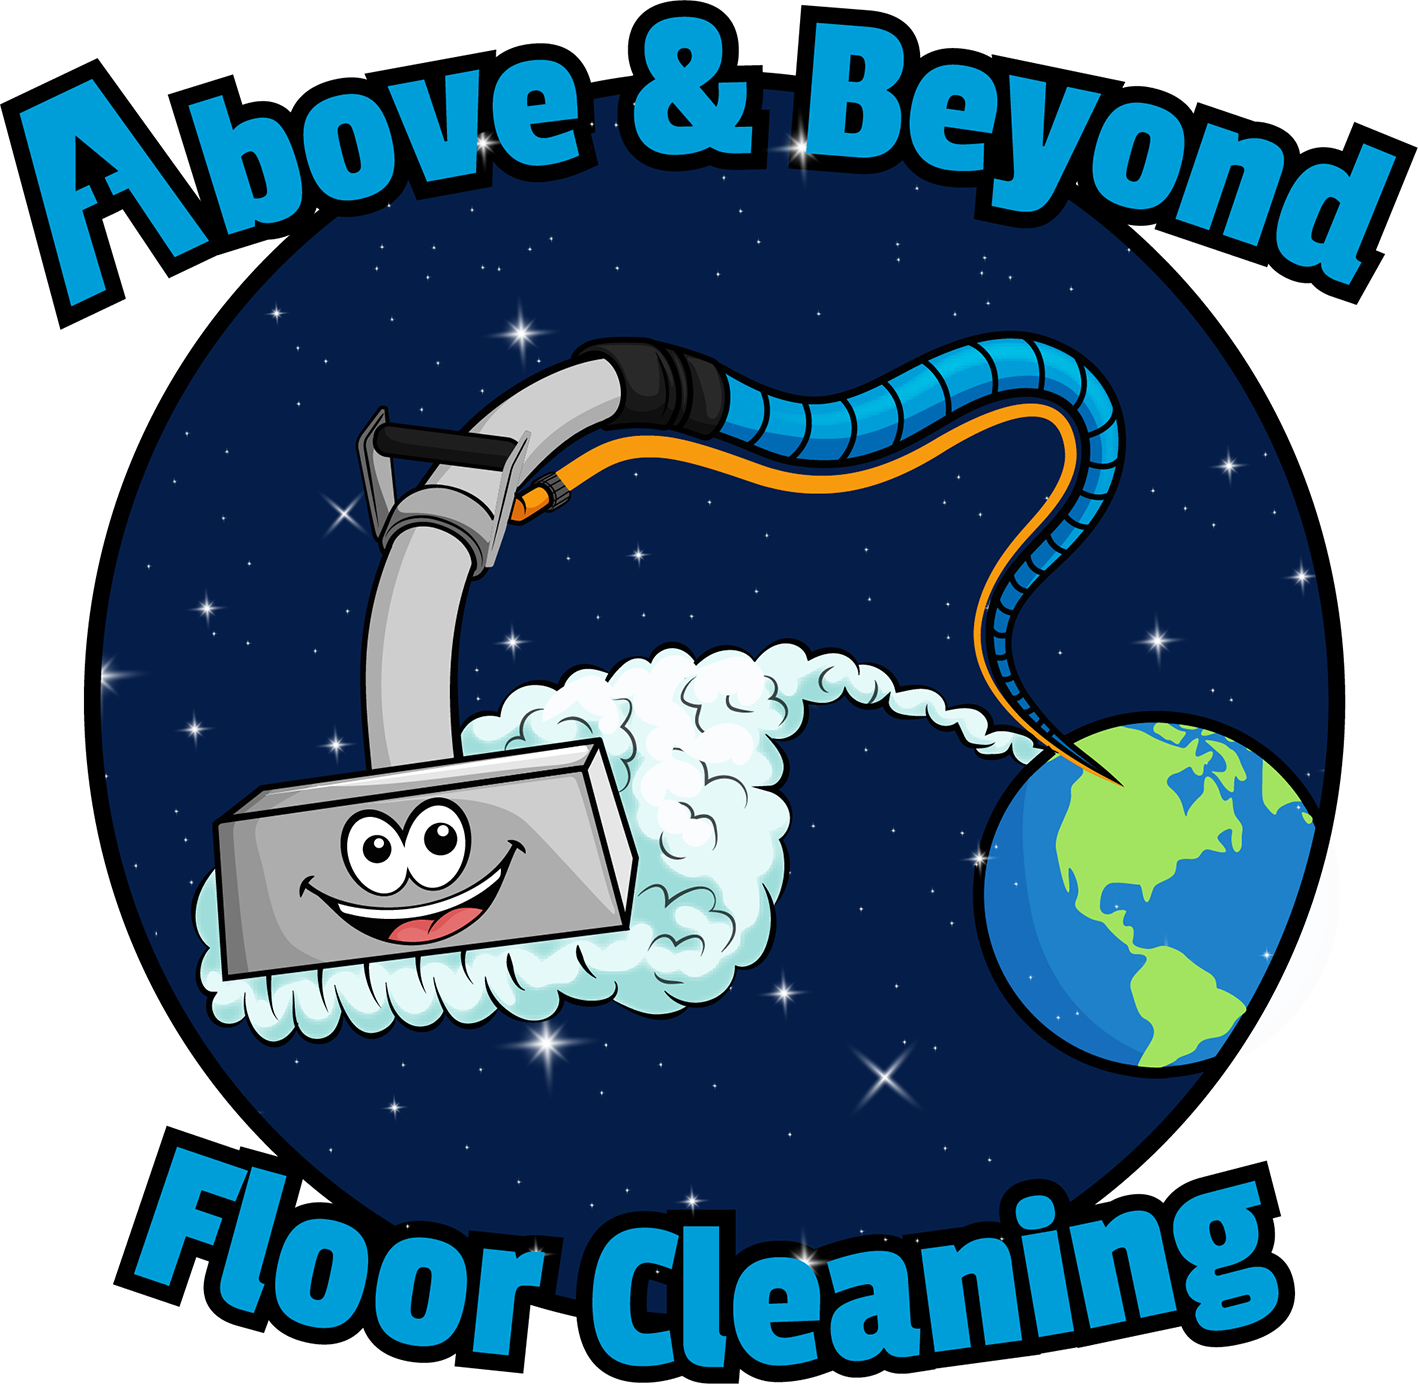 above and beyond floor cleaning in el dorado hills california logo